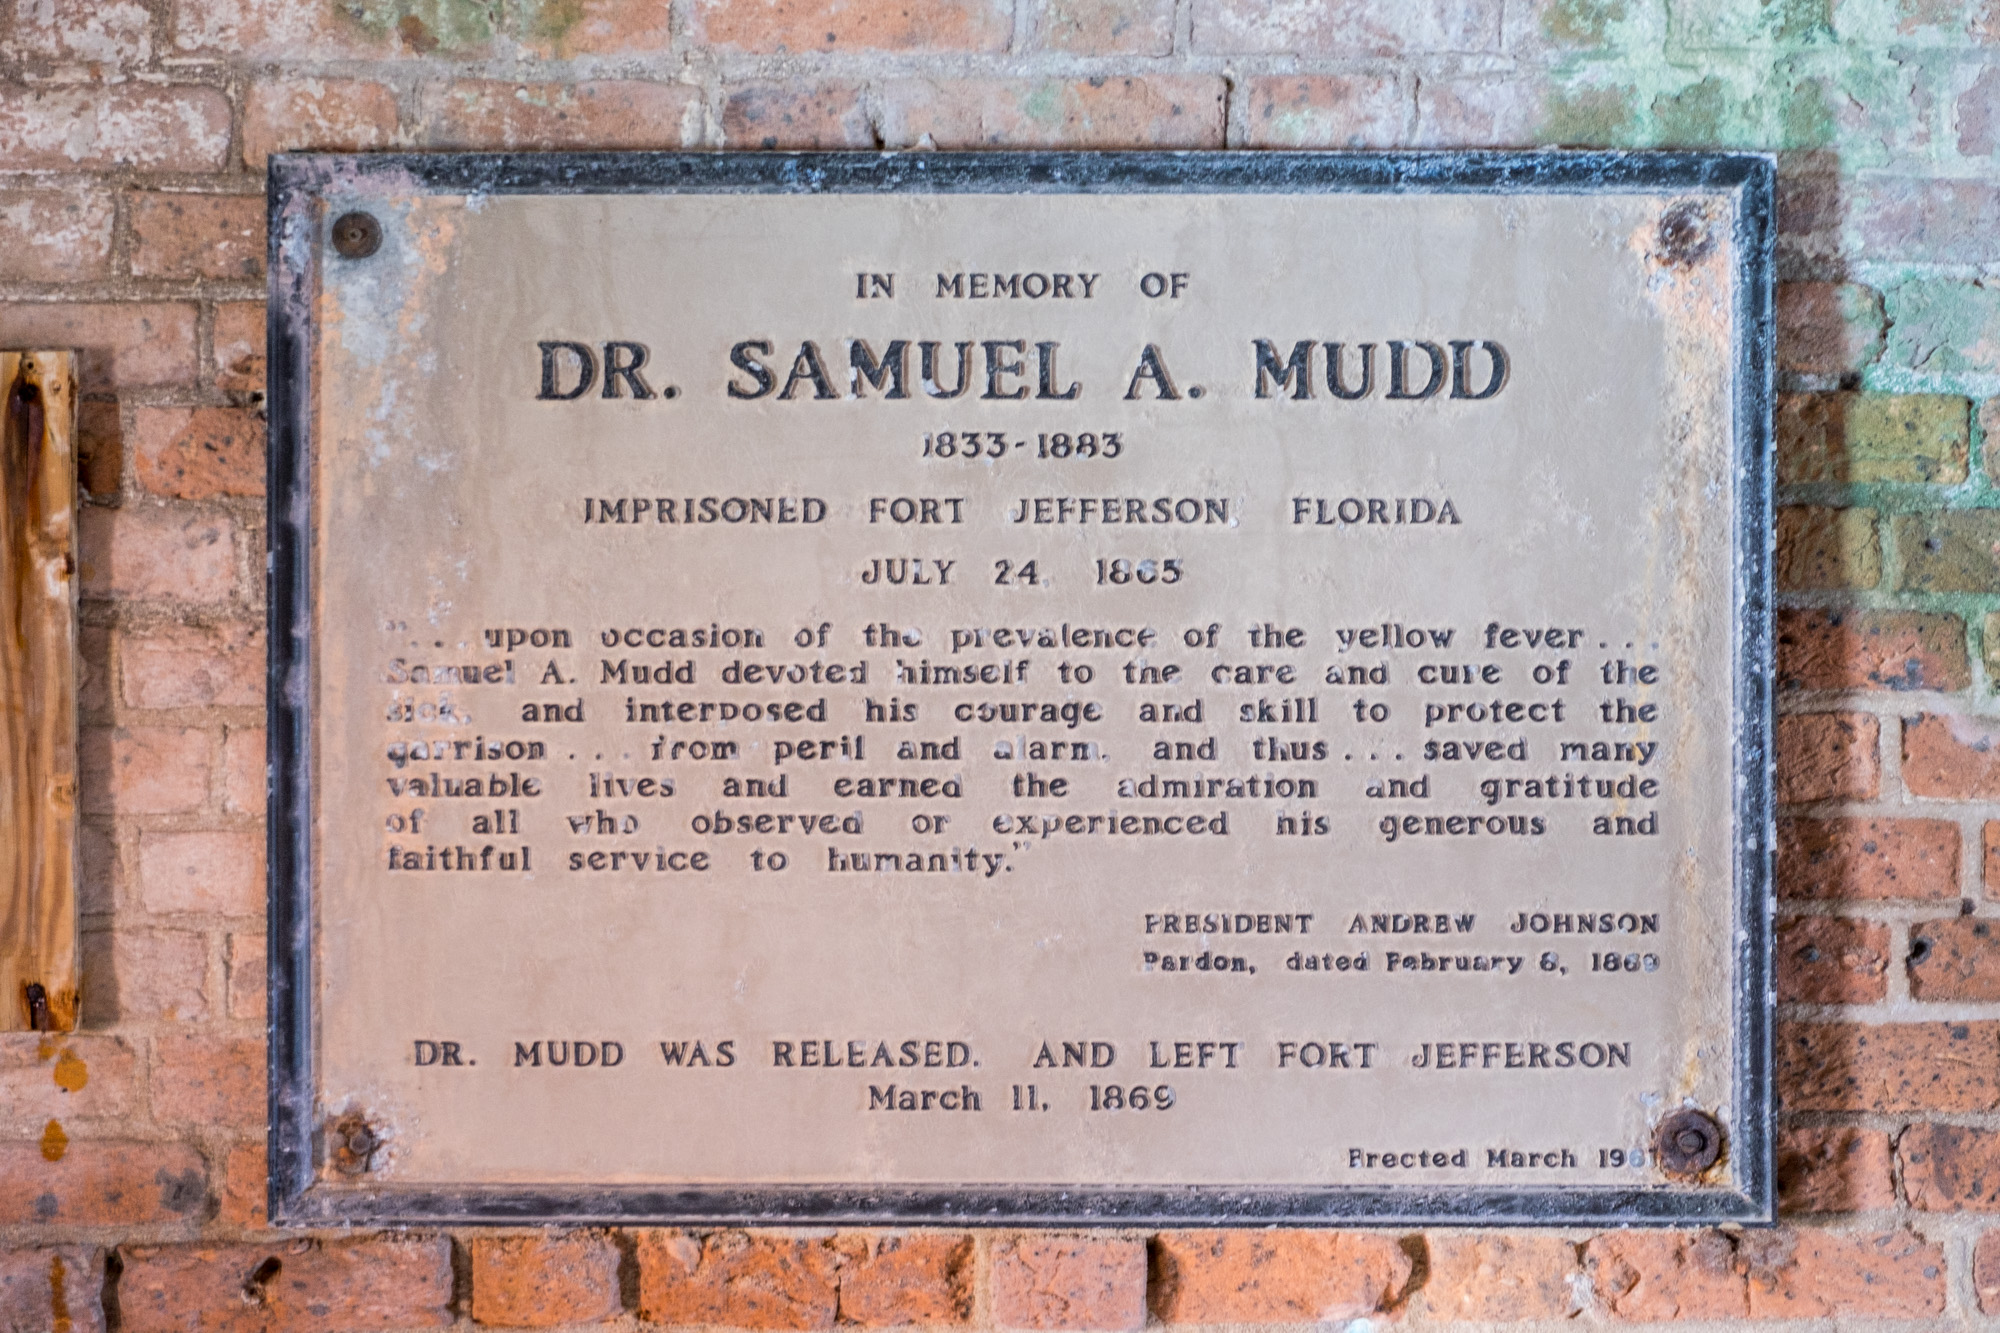 His name is Mudd. Fort Jeffersons' most famous inmate was Dr Samuel Mudd, who was imprisoned right here after conspiring with John Wilkes Booth in the assassination of Abraham Lincoln.